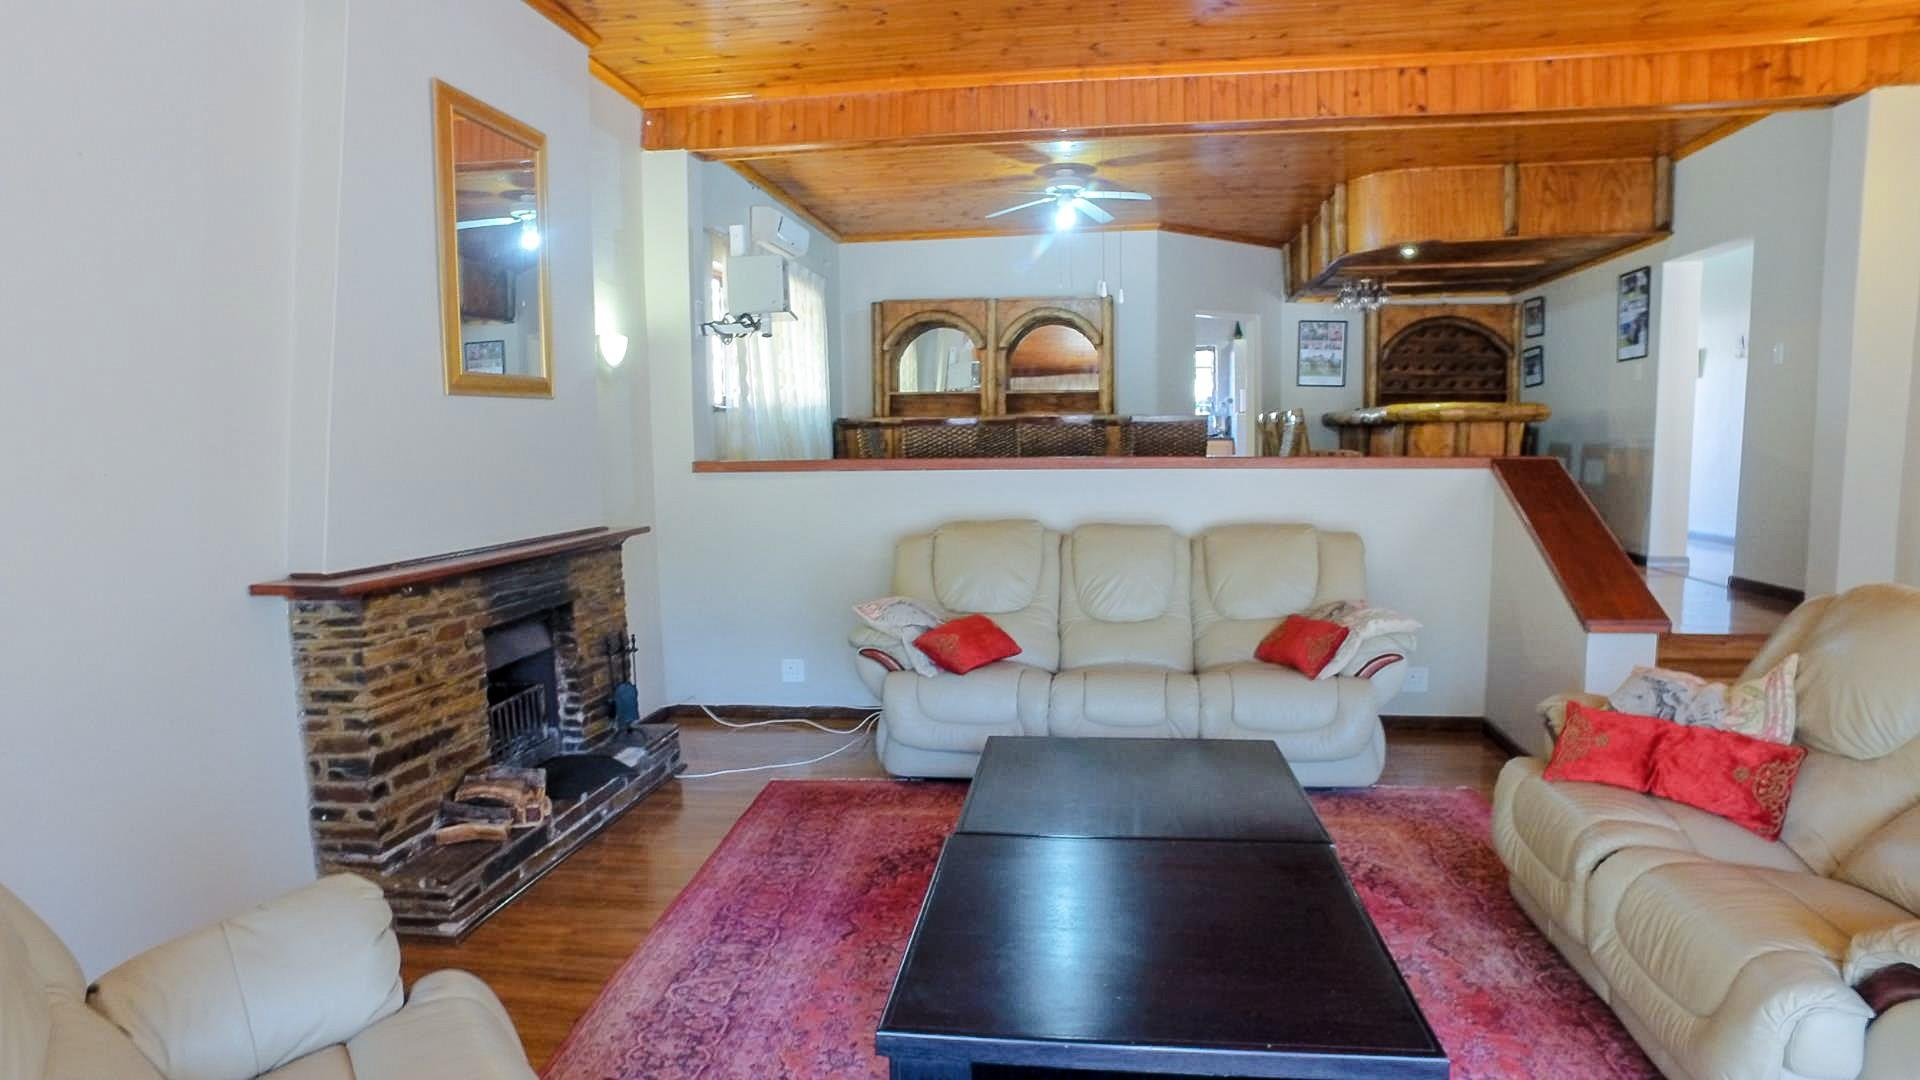 4 Bedroom House For Sale in Ashburton | RE/MAX™ of ...